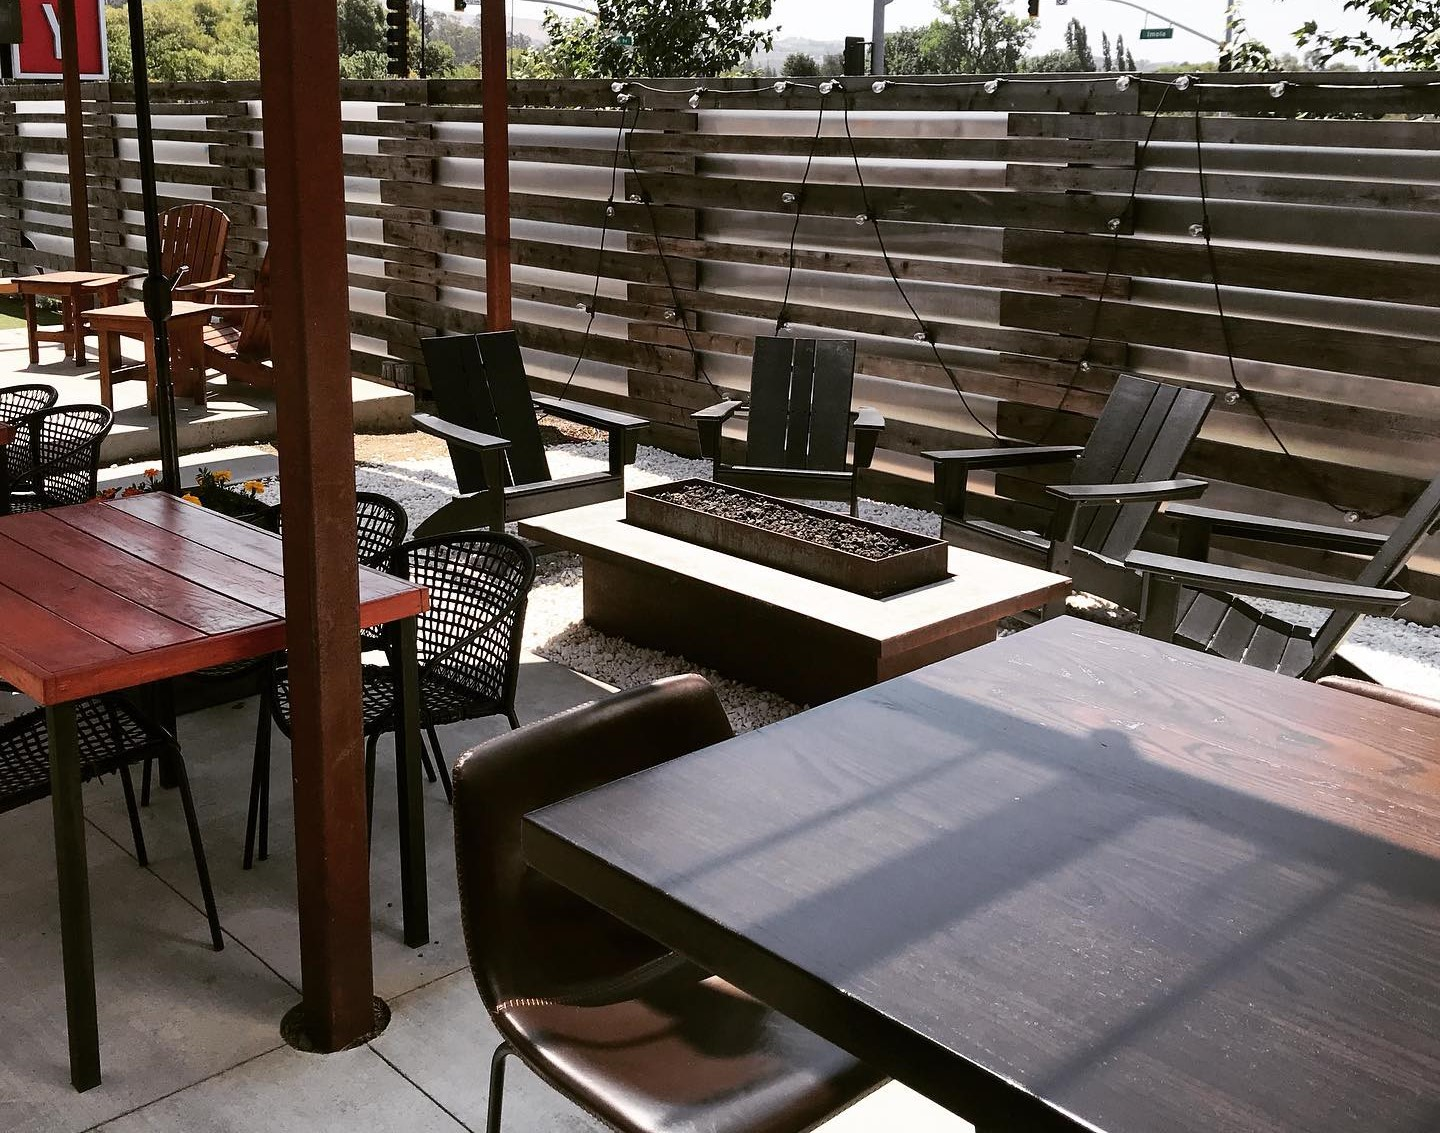 outdoor dining area with tables and chairs